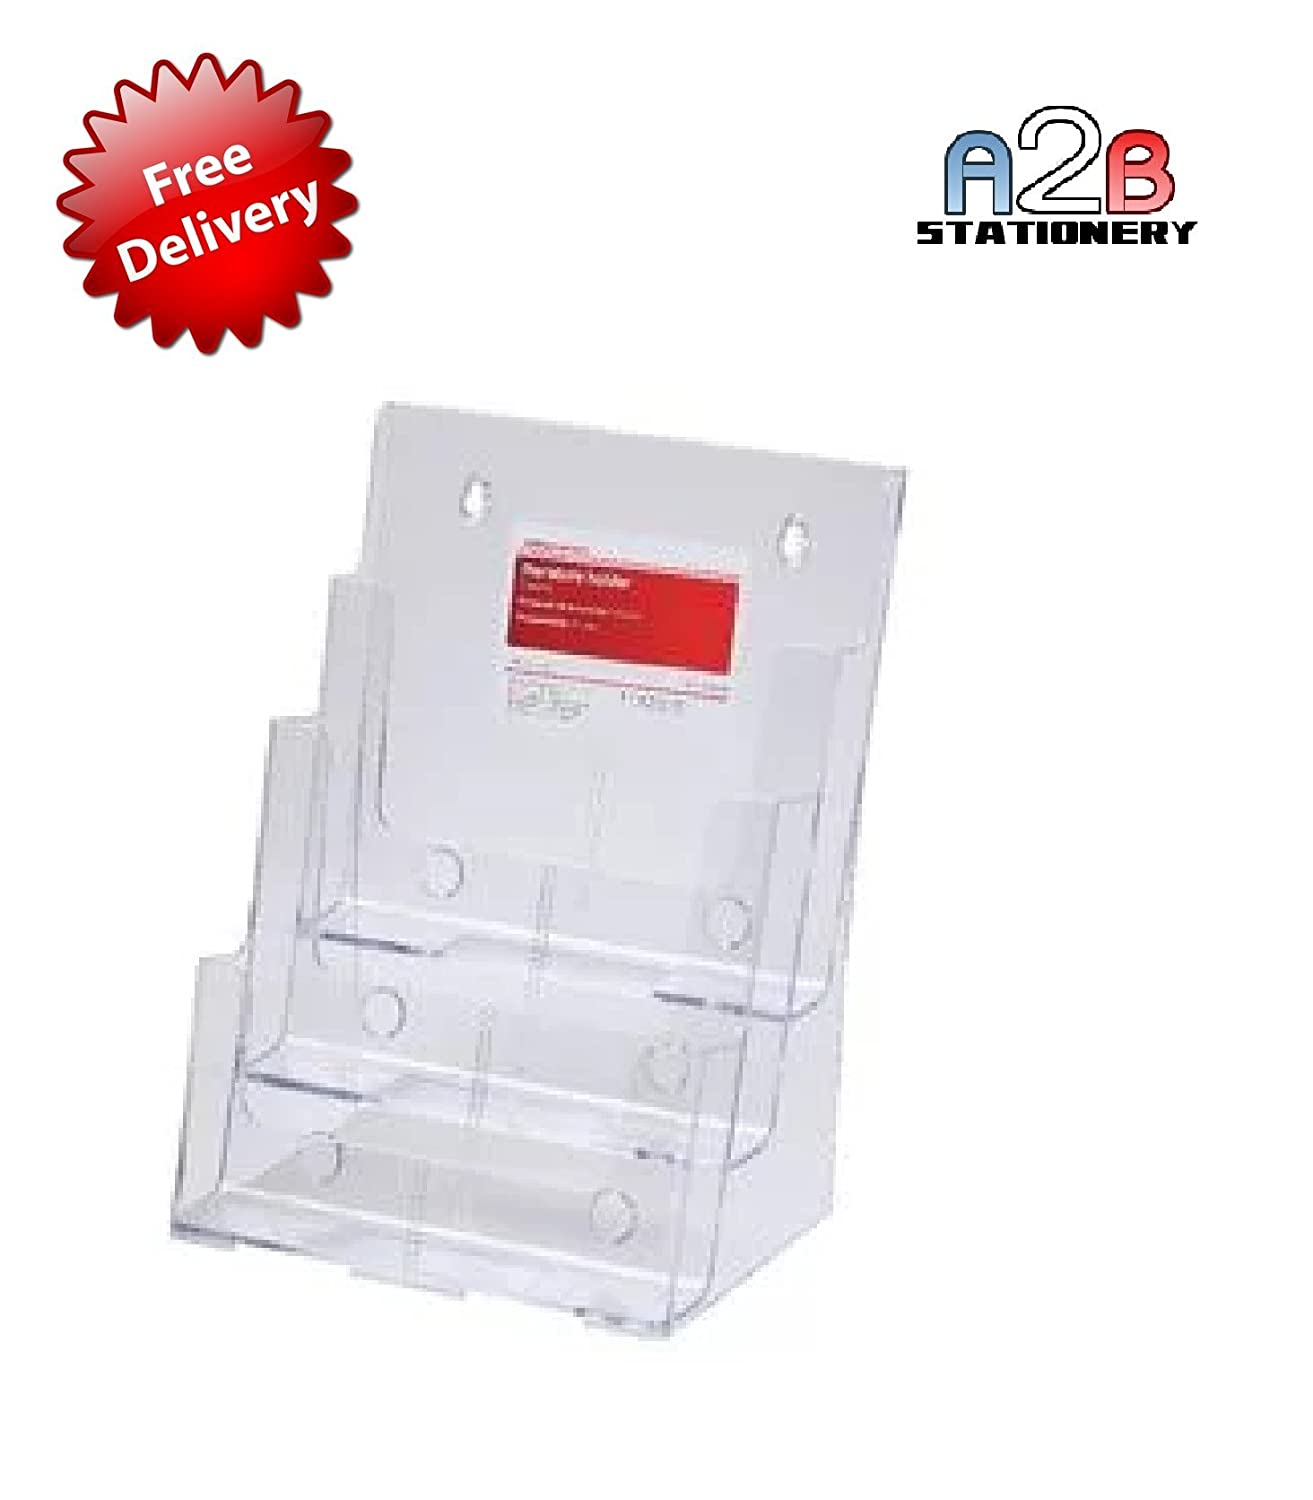 Acrylic brochure Holder A2B Stationery A4 3 Tier Sign Holder